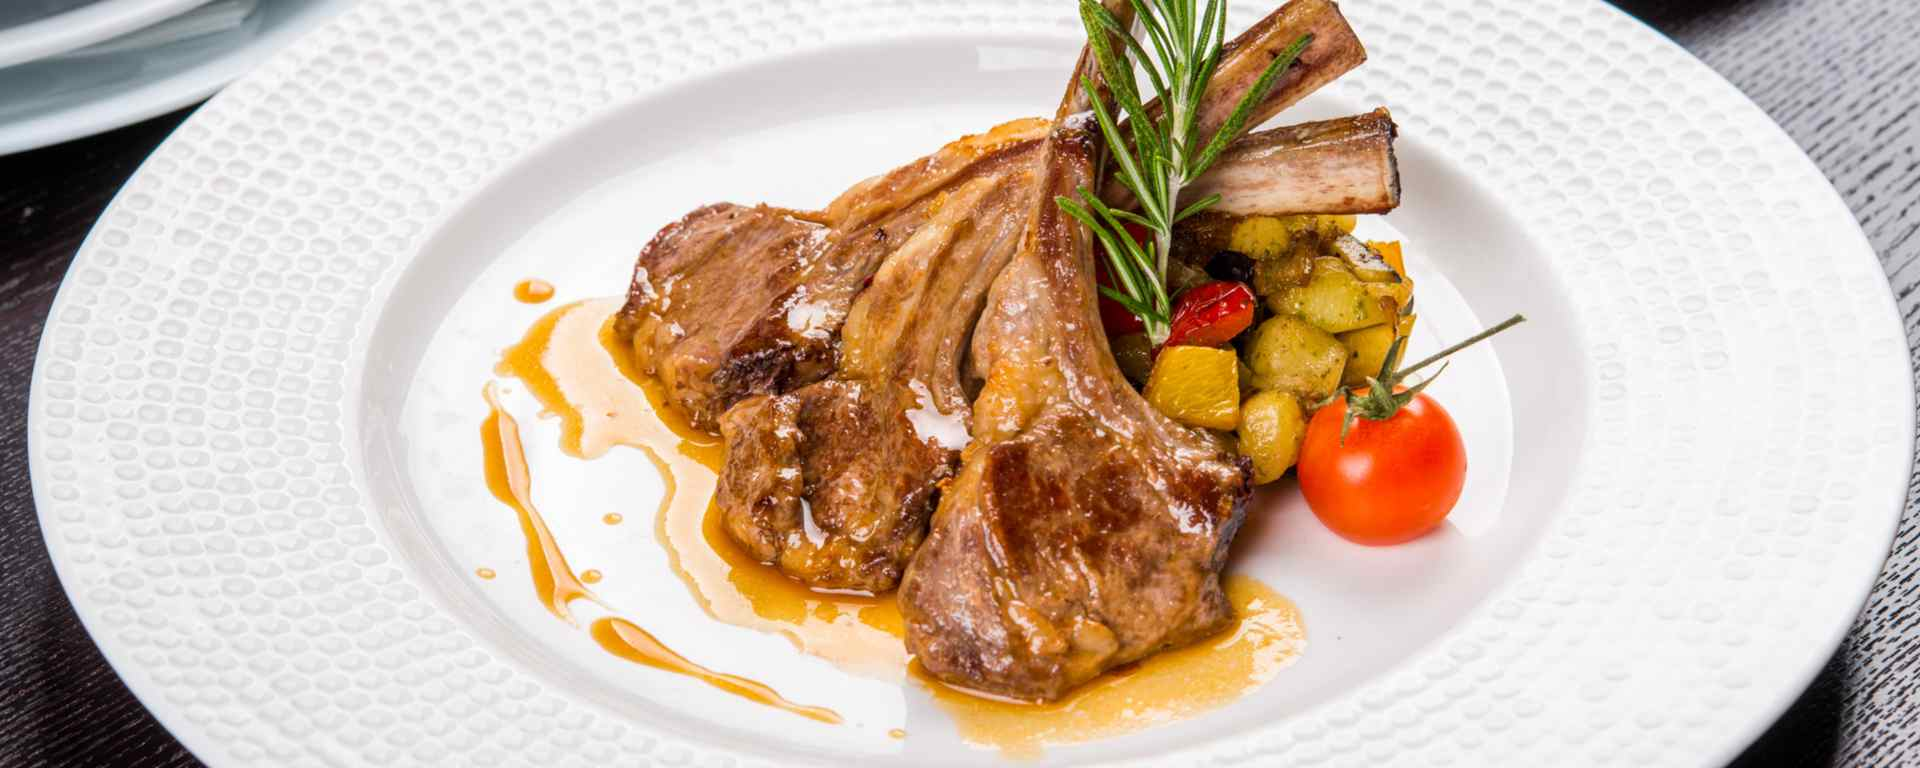 Photo for - Pan Seared Veal Chops with Sundried Tomato Cream